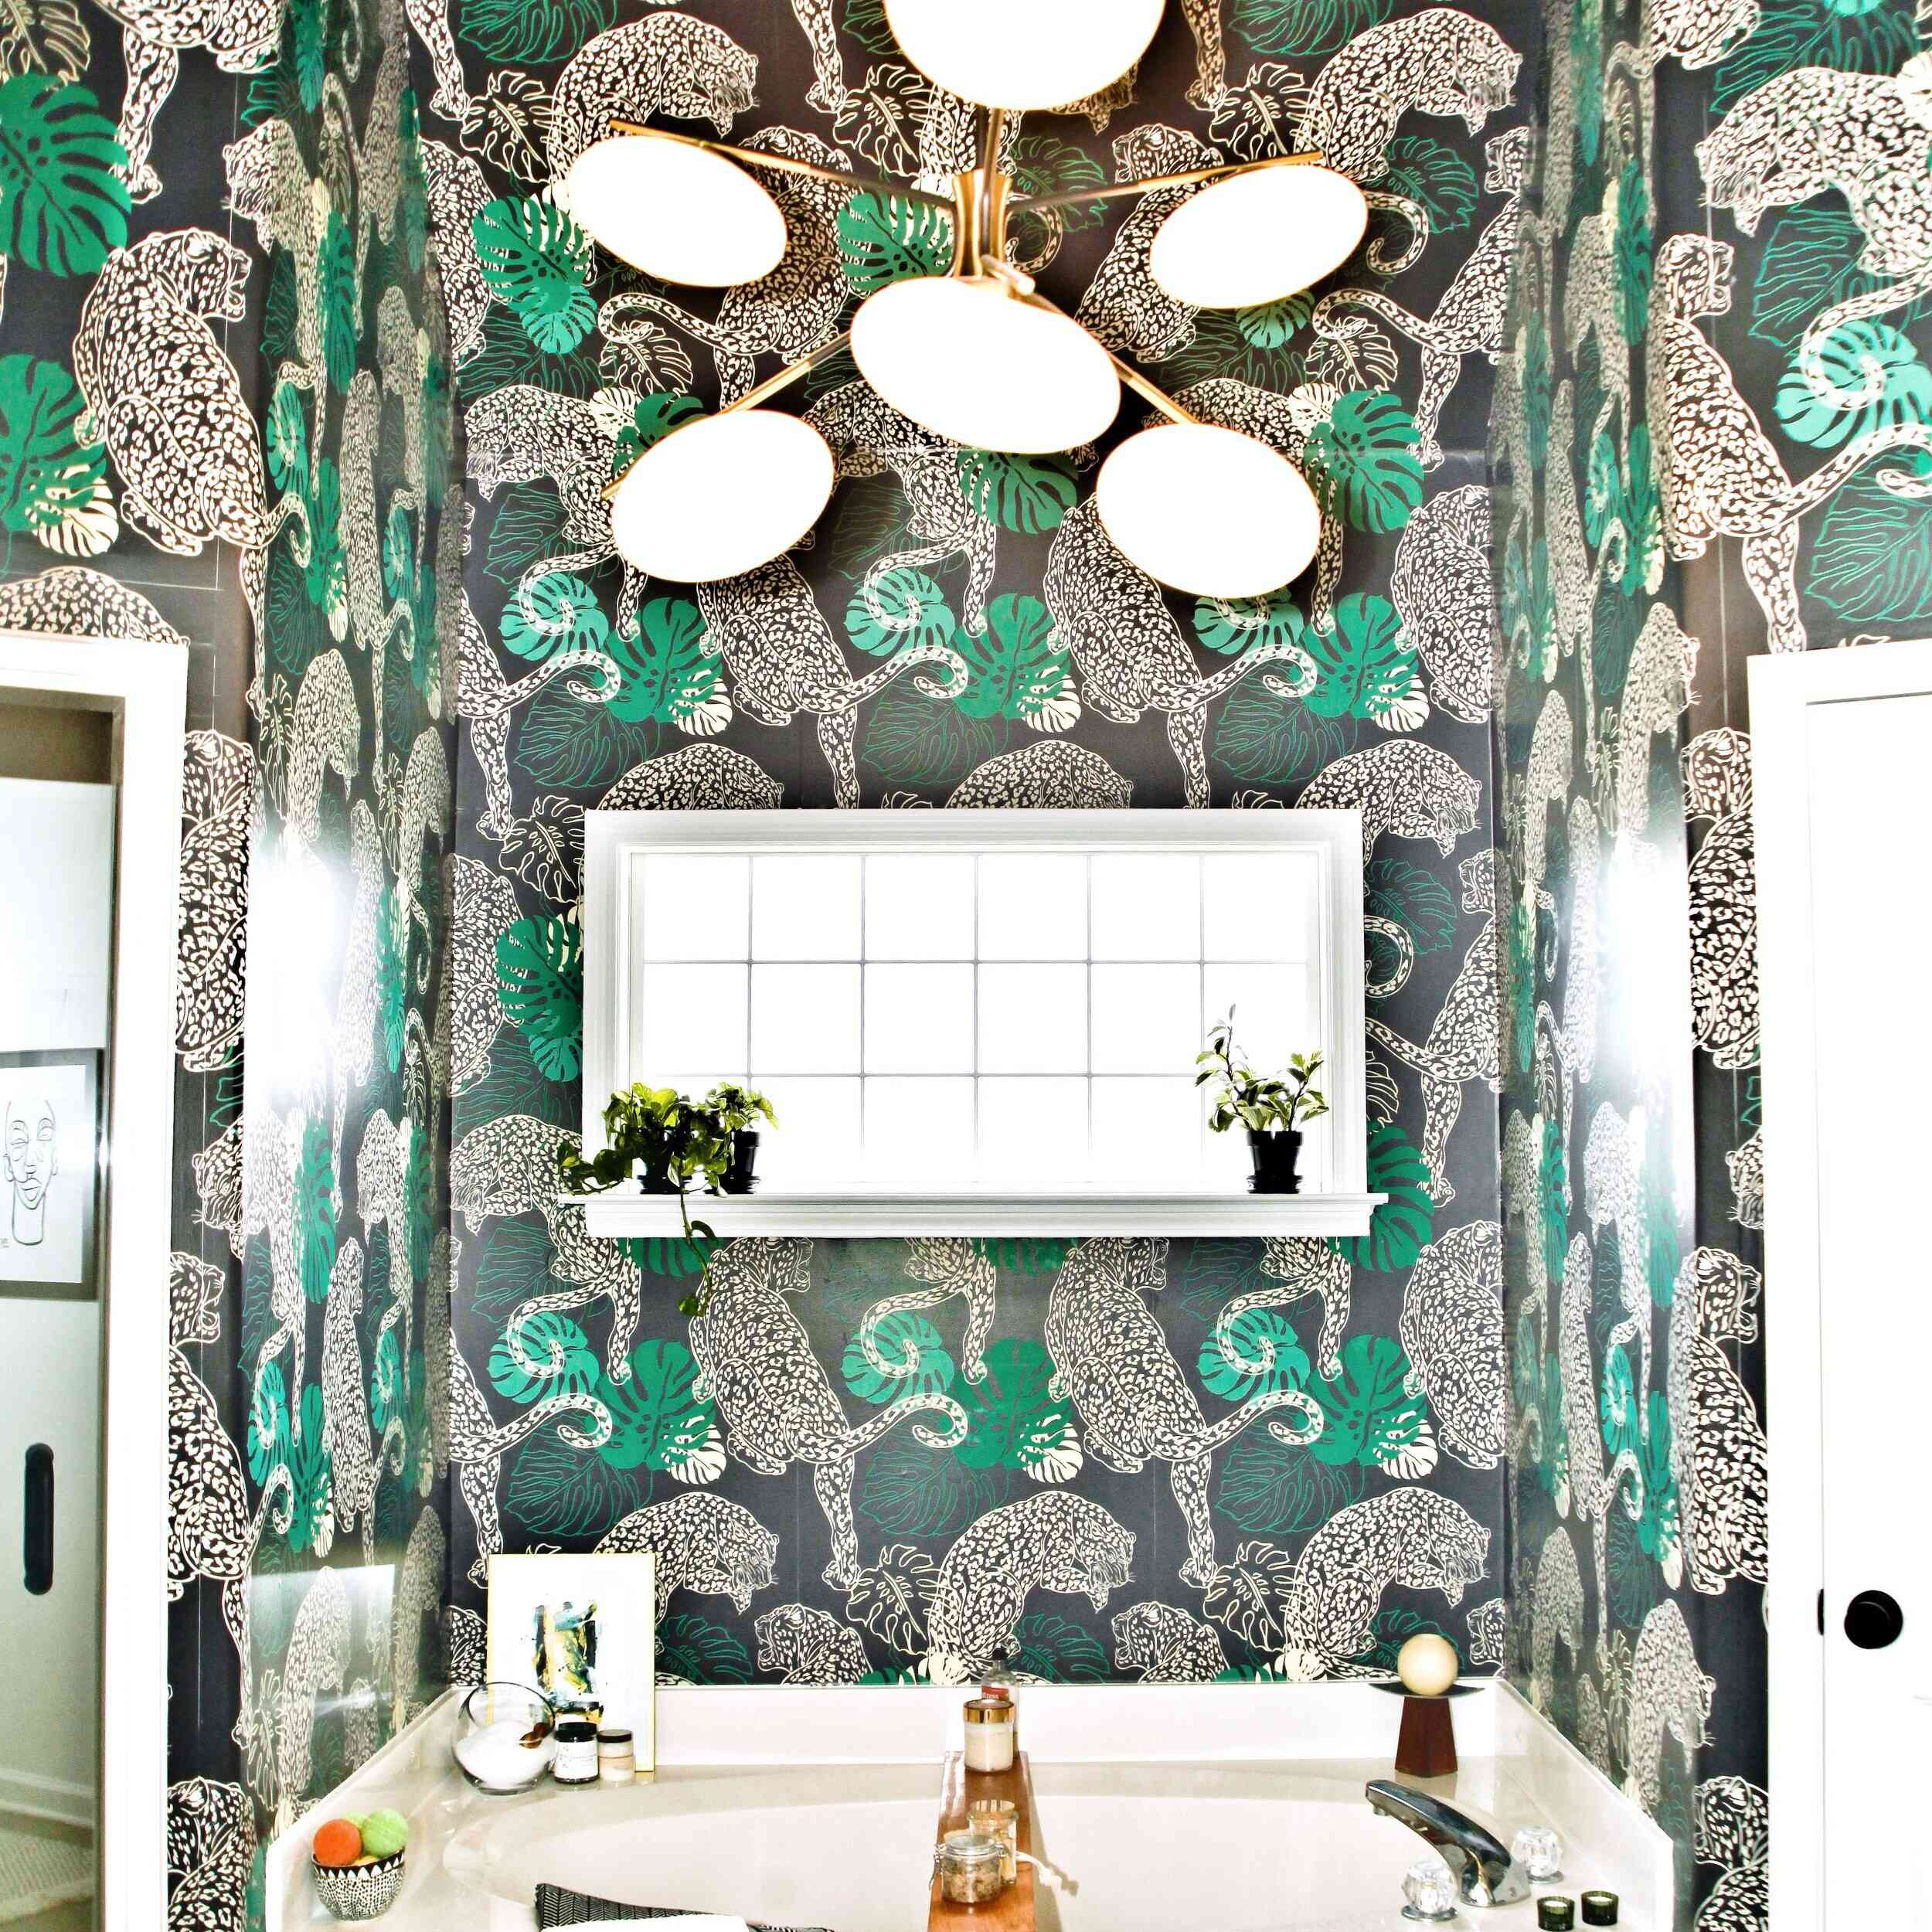 Dramatic bathroom with jaguar wallpaper and modern fixtures